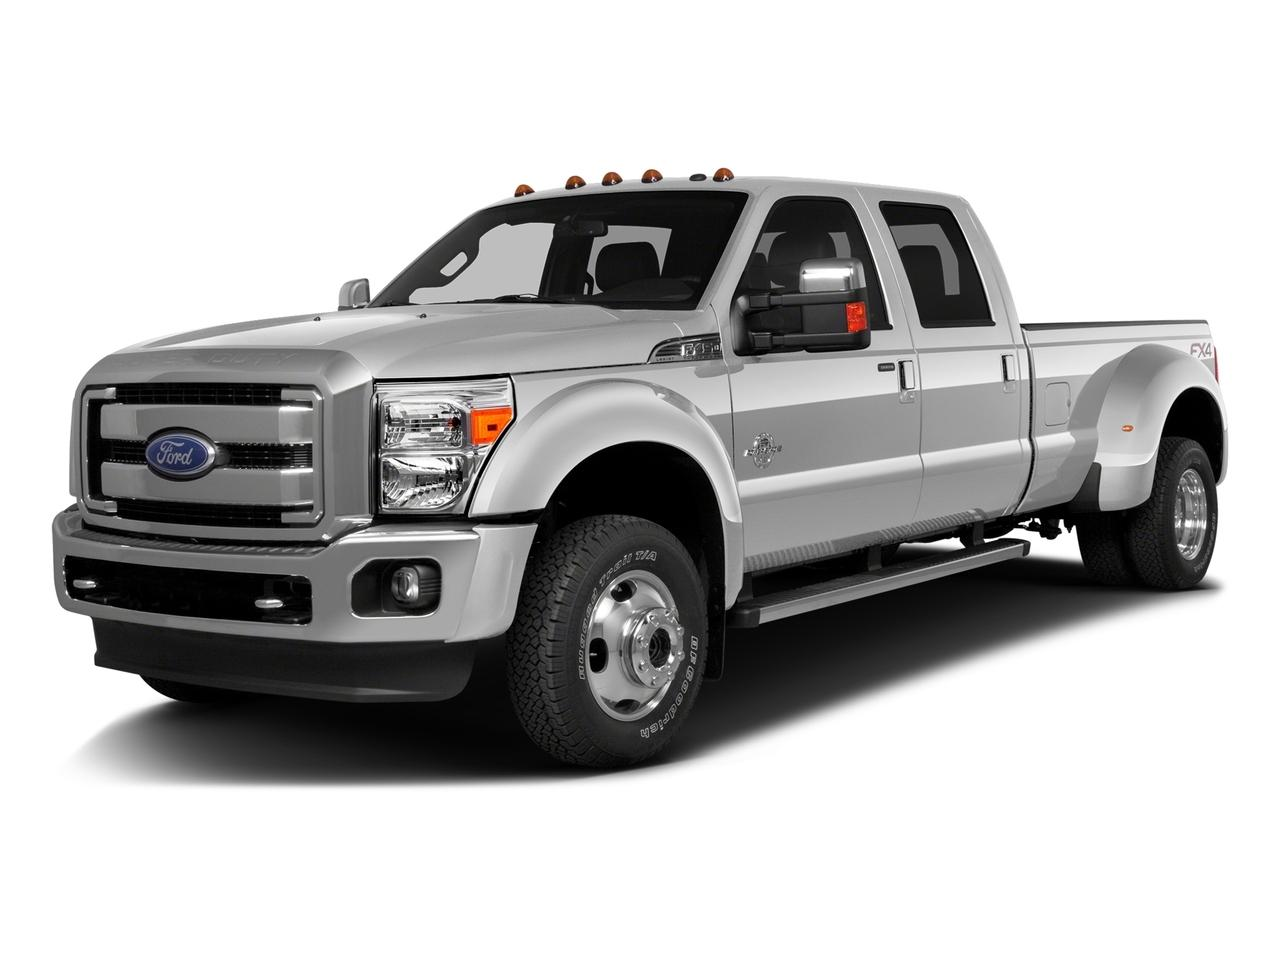 2016 Ford Super Duty F-350 DRW Vehicle Photo in Portland, OR 97225